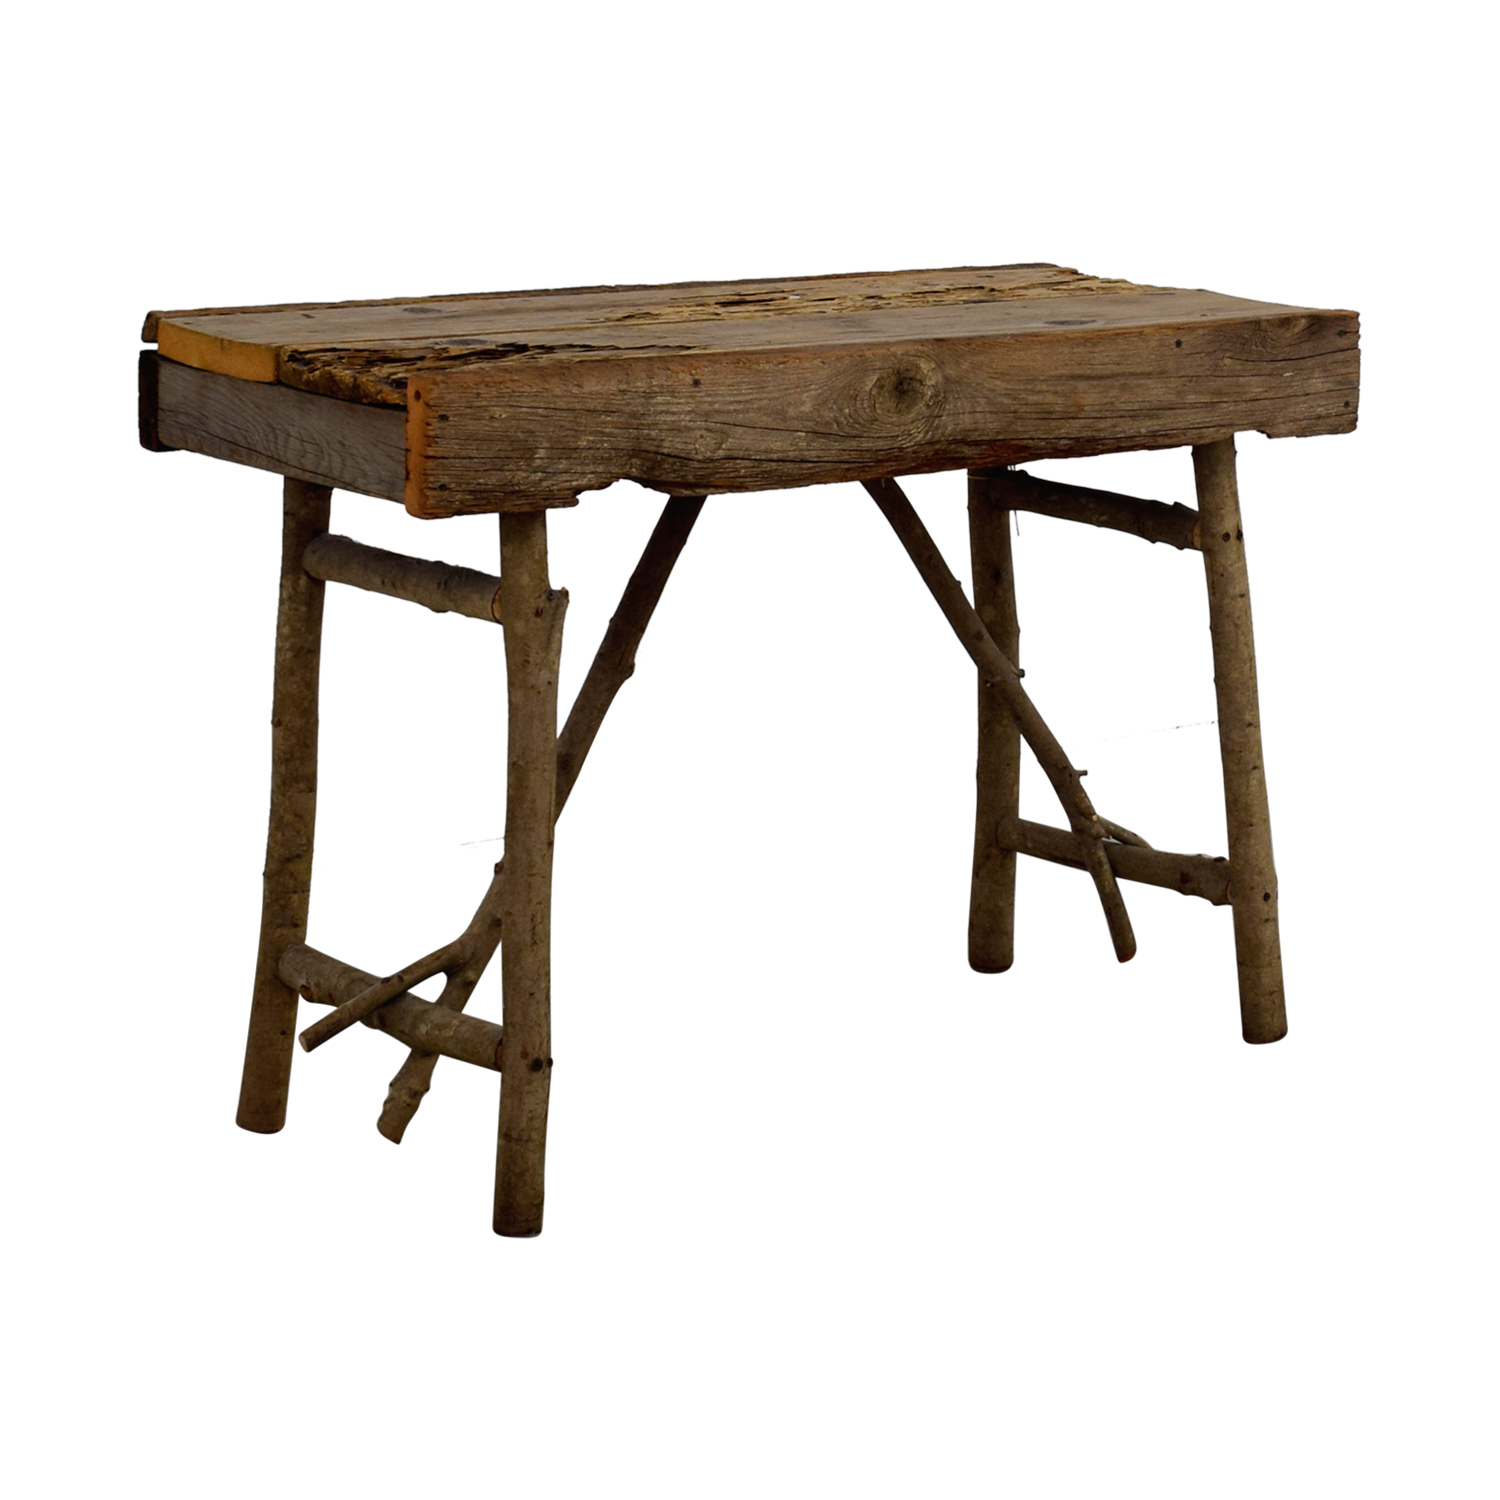 74 Off Pier 1 Pier 1 Imports Rustic Wood Tv Table Tables